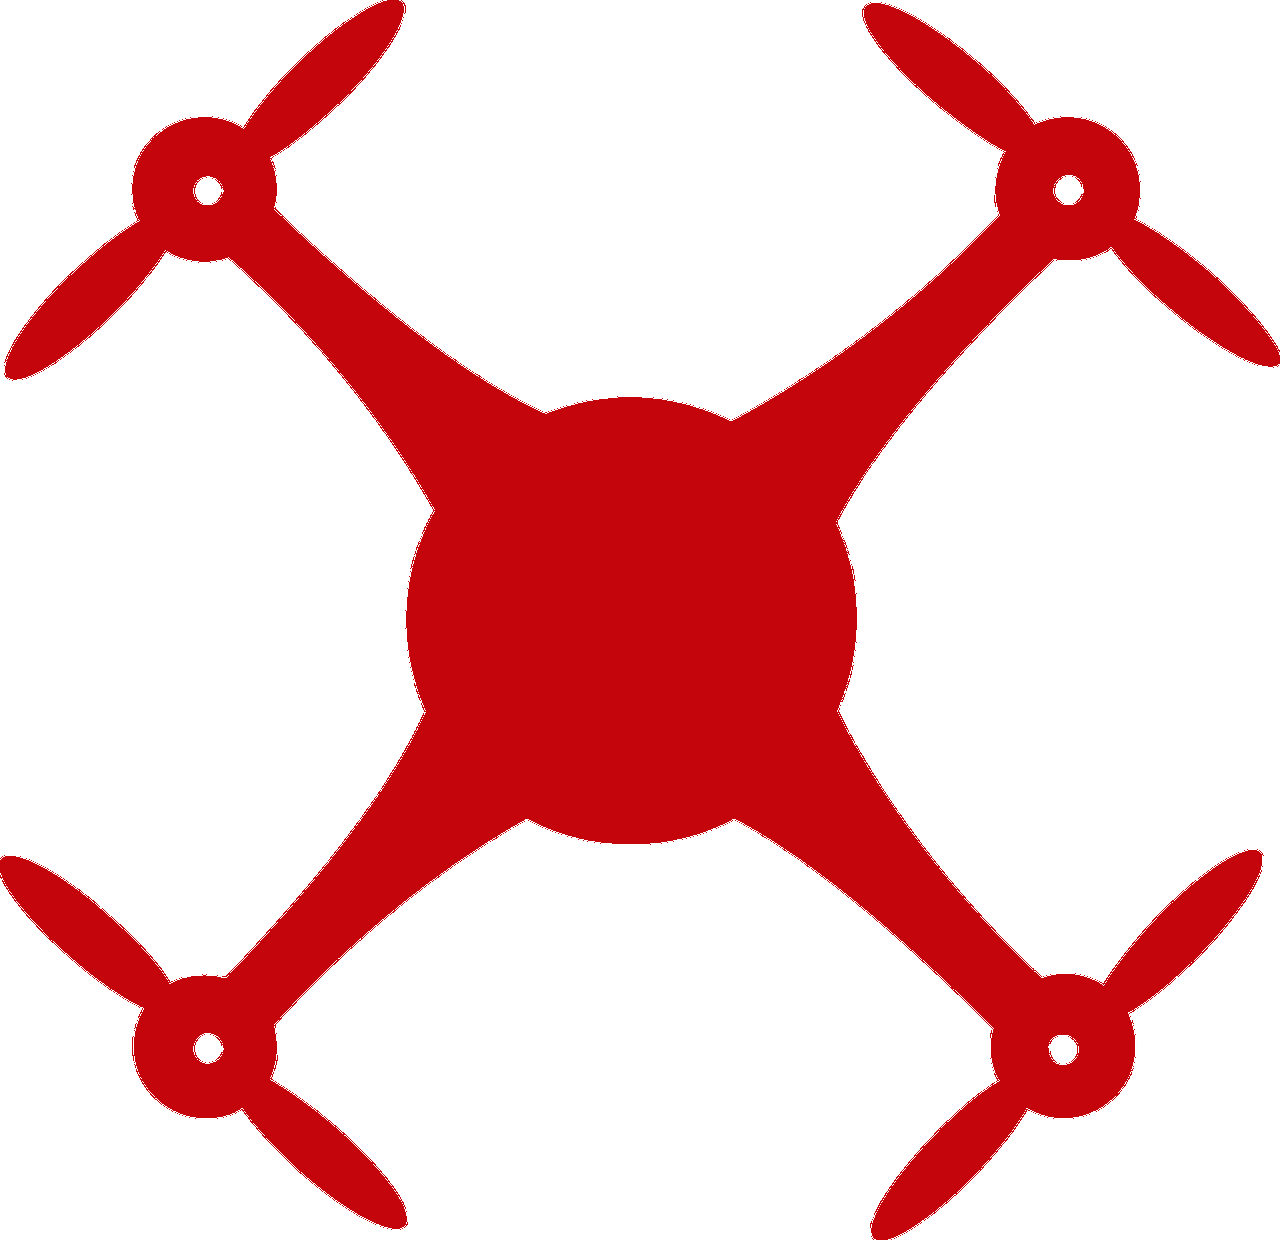 red drone icon